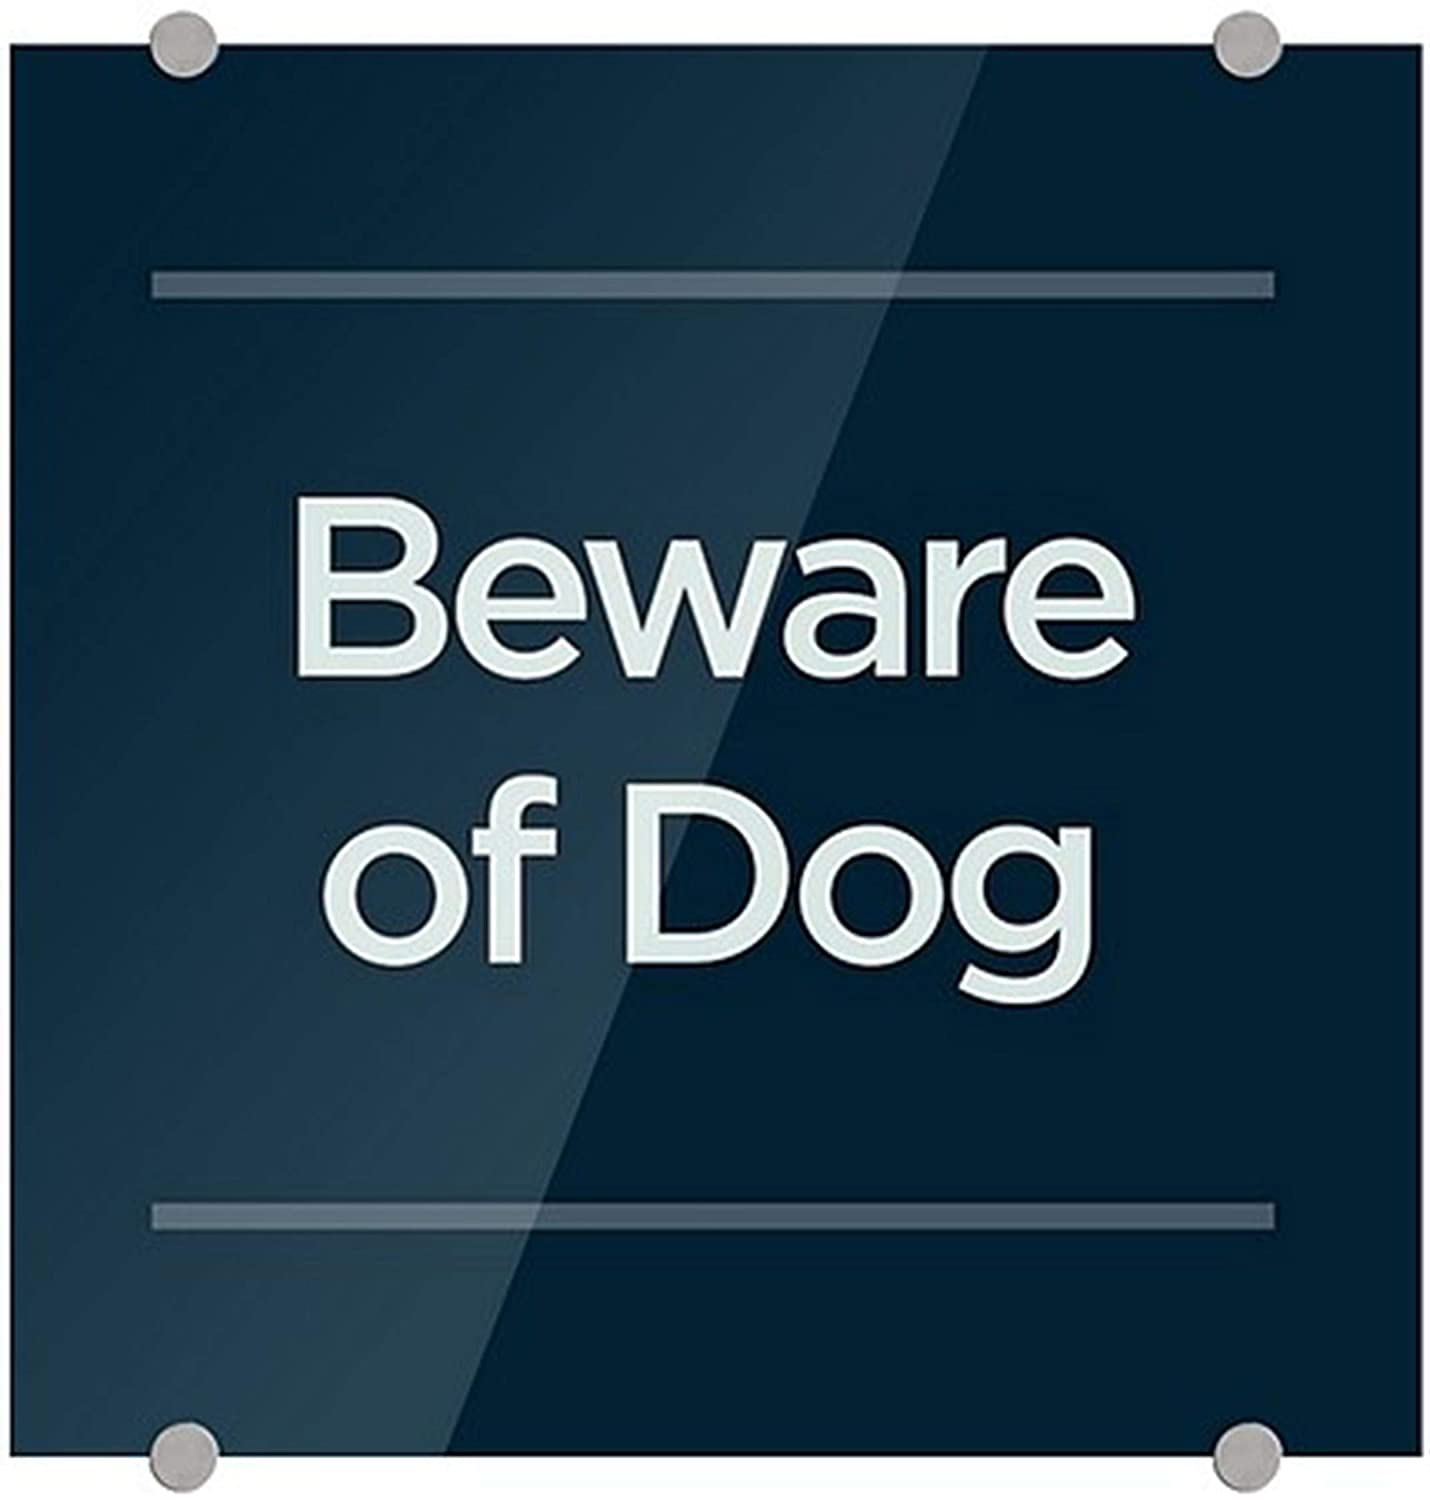 CGSignLab 2461445_5mbsw_16x16_None Beware of High quality Long-awaited Navy Dog -Basic 3mm